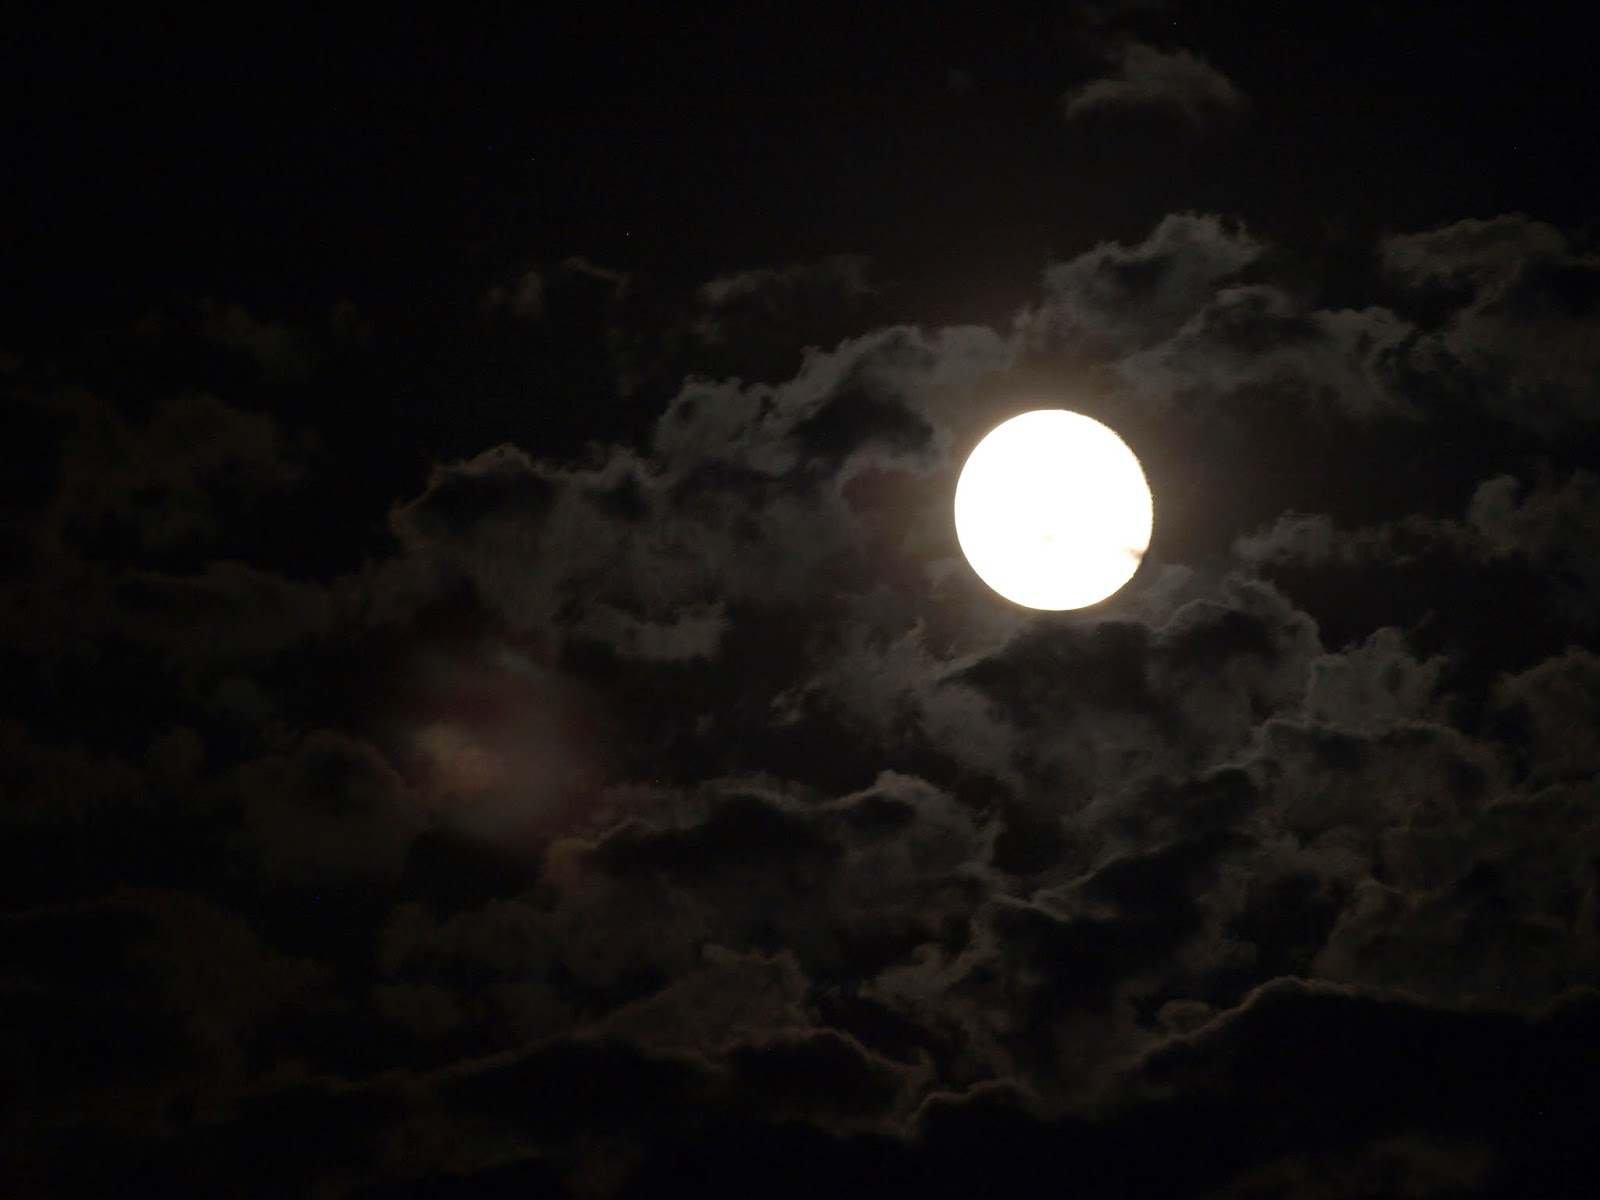 Picture of Super Moon taken June 2013